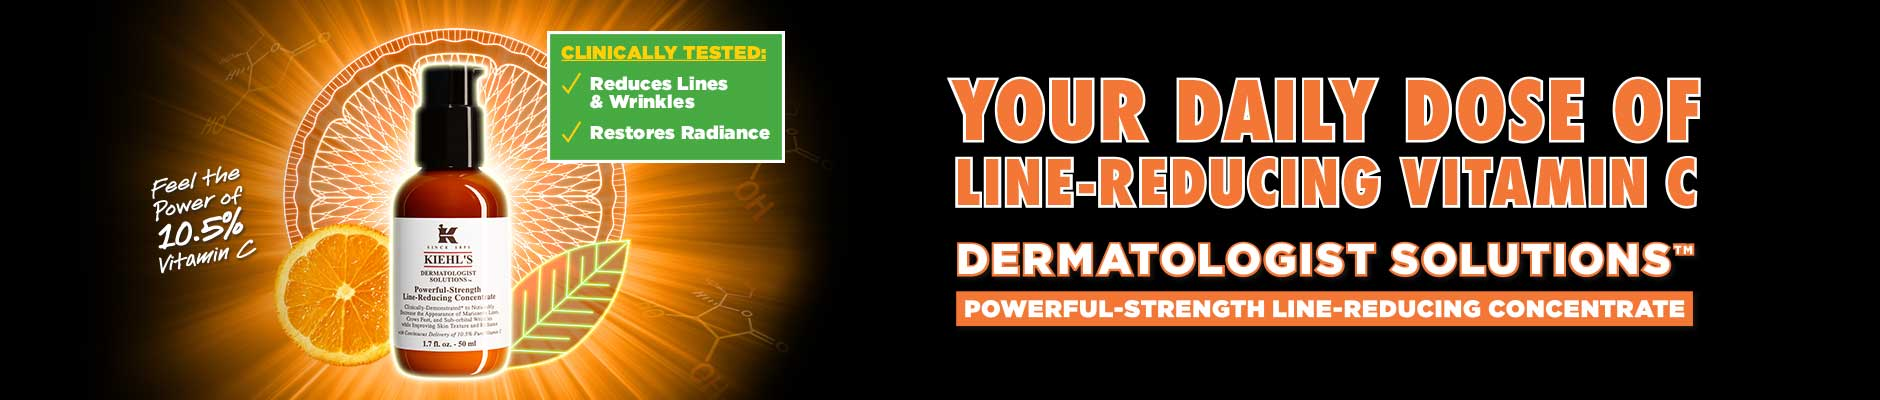 Your Daily Dose Of Line-Reducing Vitamin C: Dermatolofist Solutions - Powerful-Strength Line-Reducing Concentrate